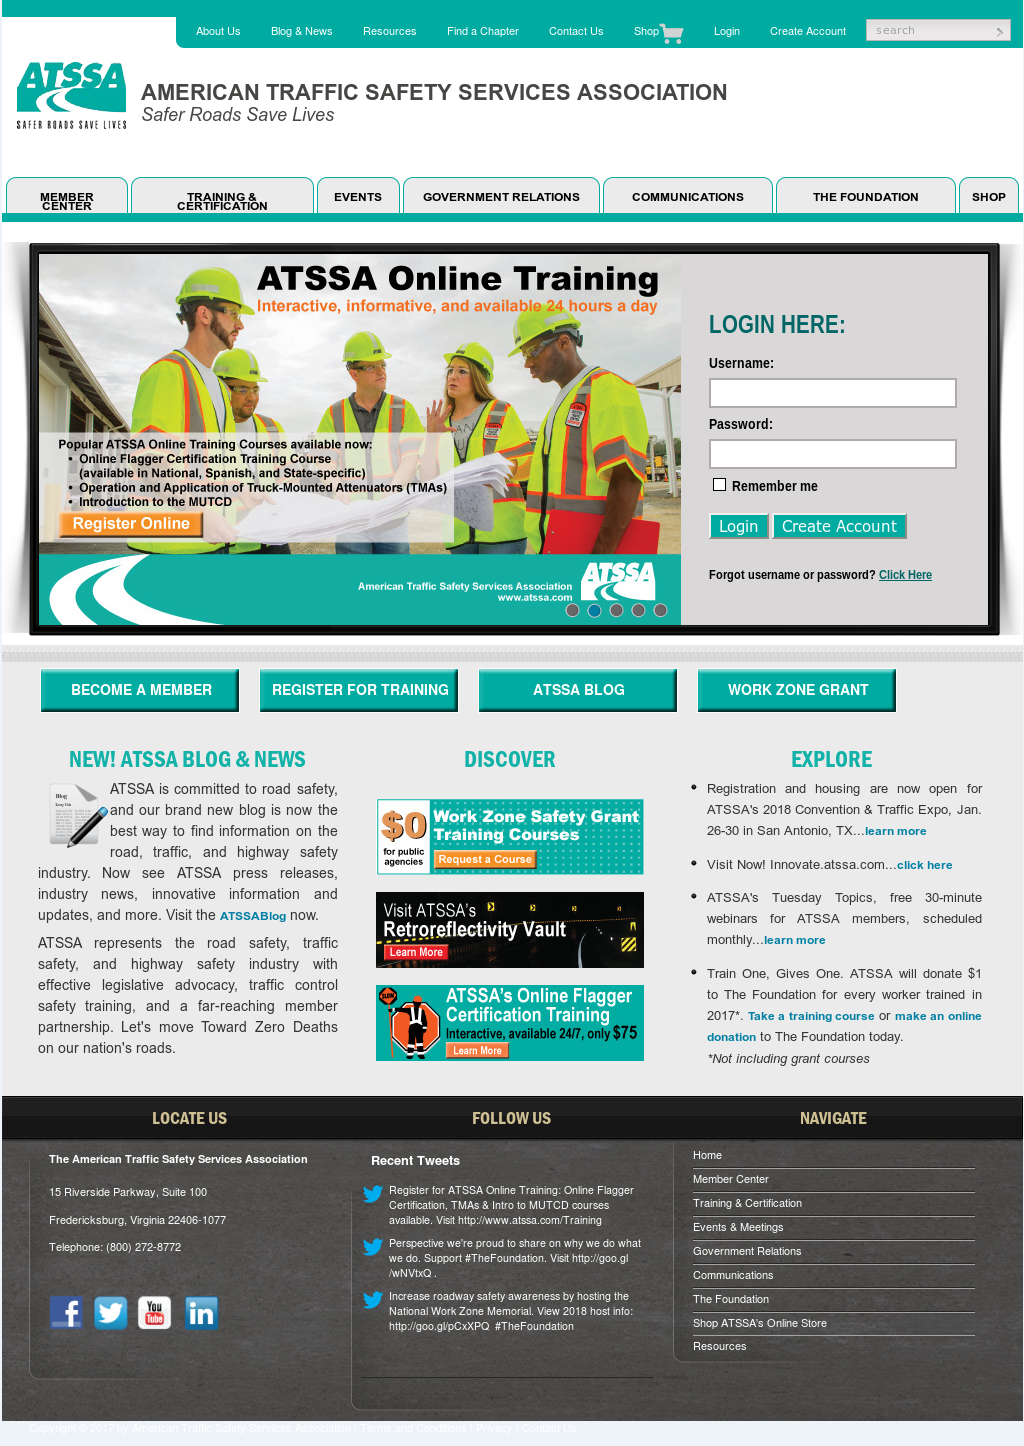 Atssa Competitors, Revenue and Employees - Owler Company Profile